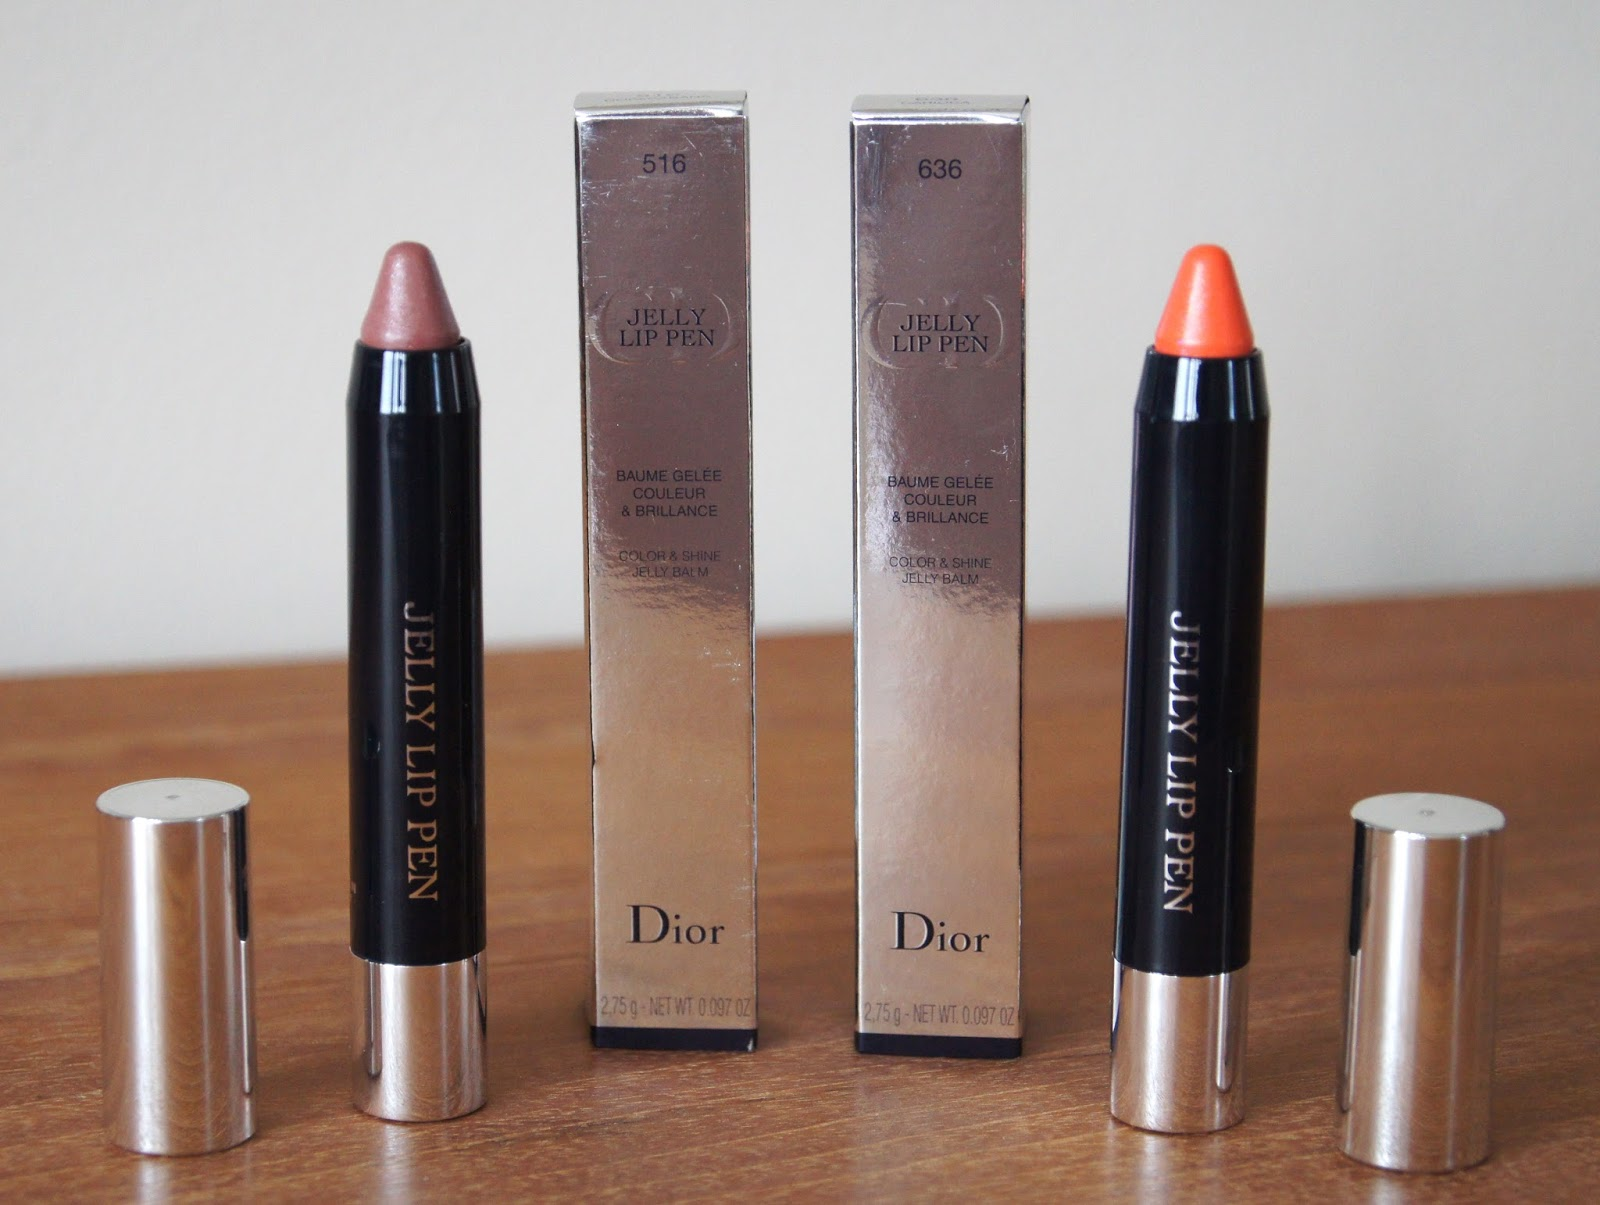 dior jelly lip pen review